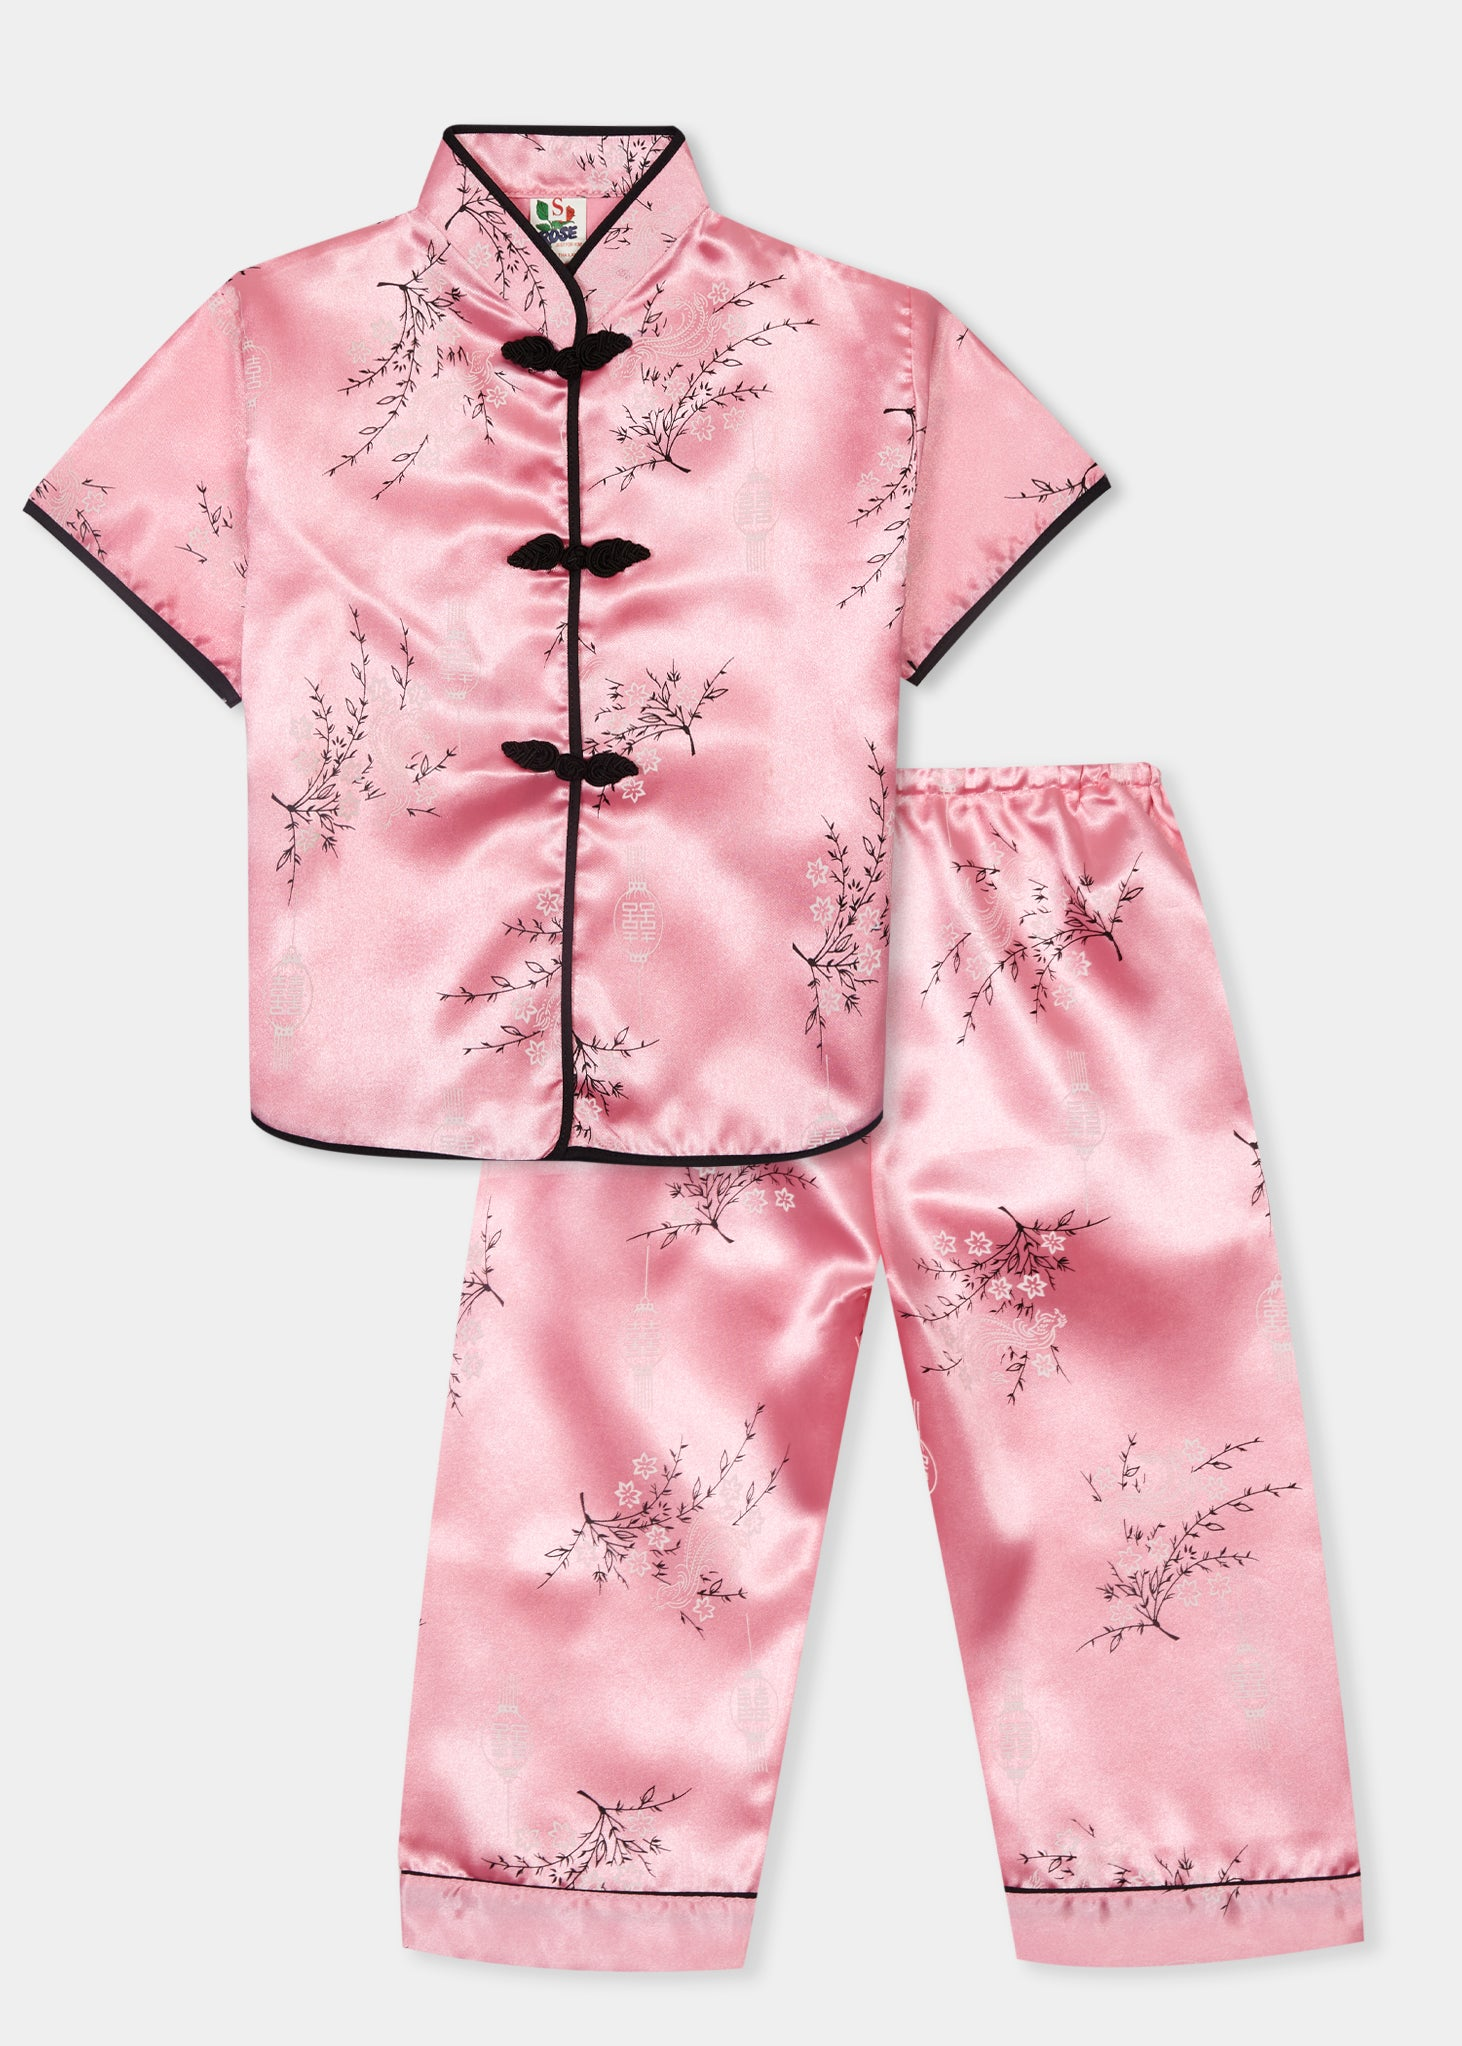 Traditionally styled pyjamas with Chinese features of mandarin collar and flower and knot frog fastenings. Manufactured in a beautiful pink silky rayon/polyester with a bird of paradise and Chinese lantern print - a symbol of joy and good fortune. Pyjama top has short sleeves, contrast bound mandarin collar and centre front opening which closes with flower and knot frog fastenings. Elasticated waist pyjama bottoms with contrast piped hem cuffs